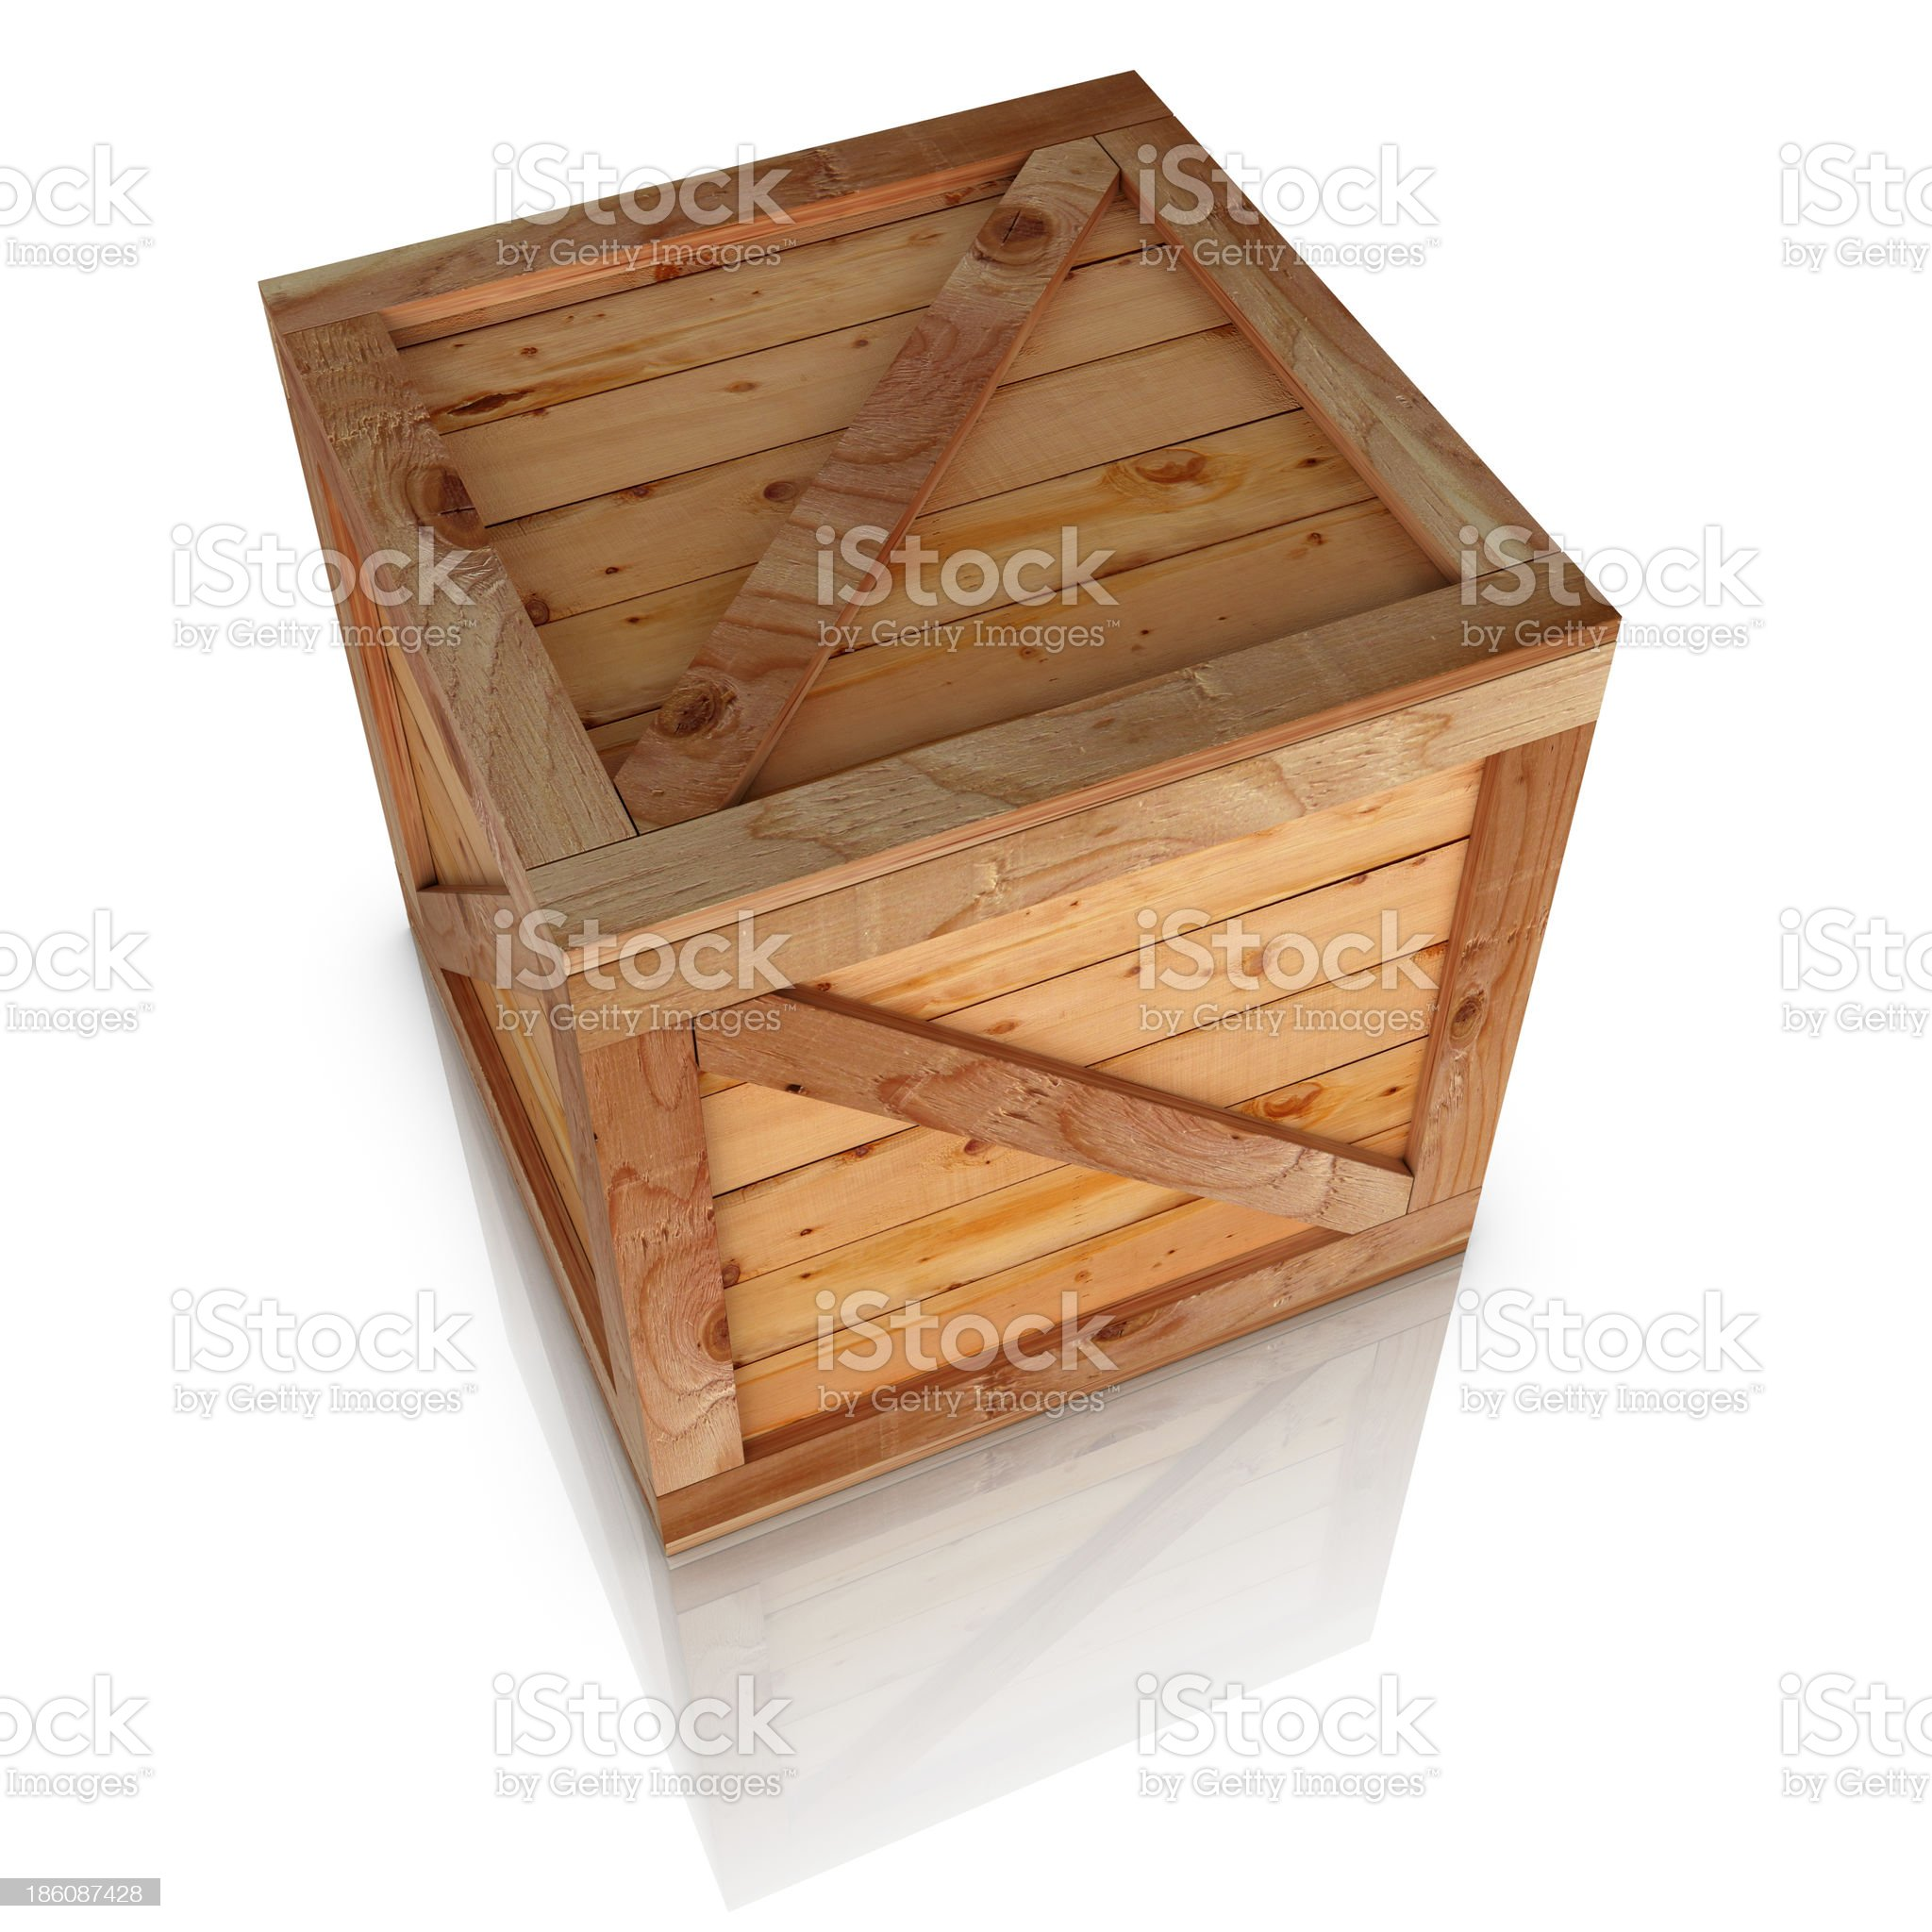 Wooden box high angle view royalty-free stock photo